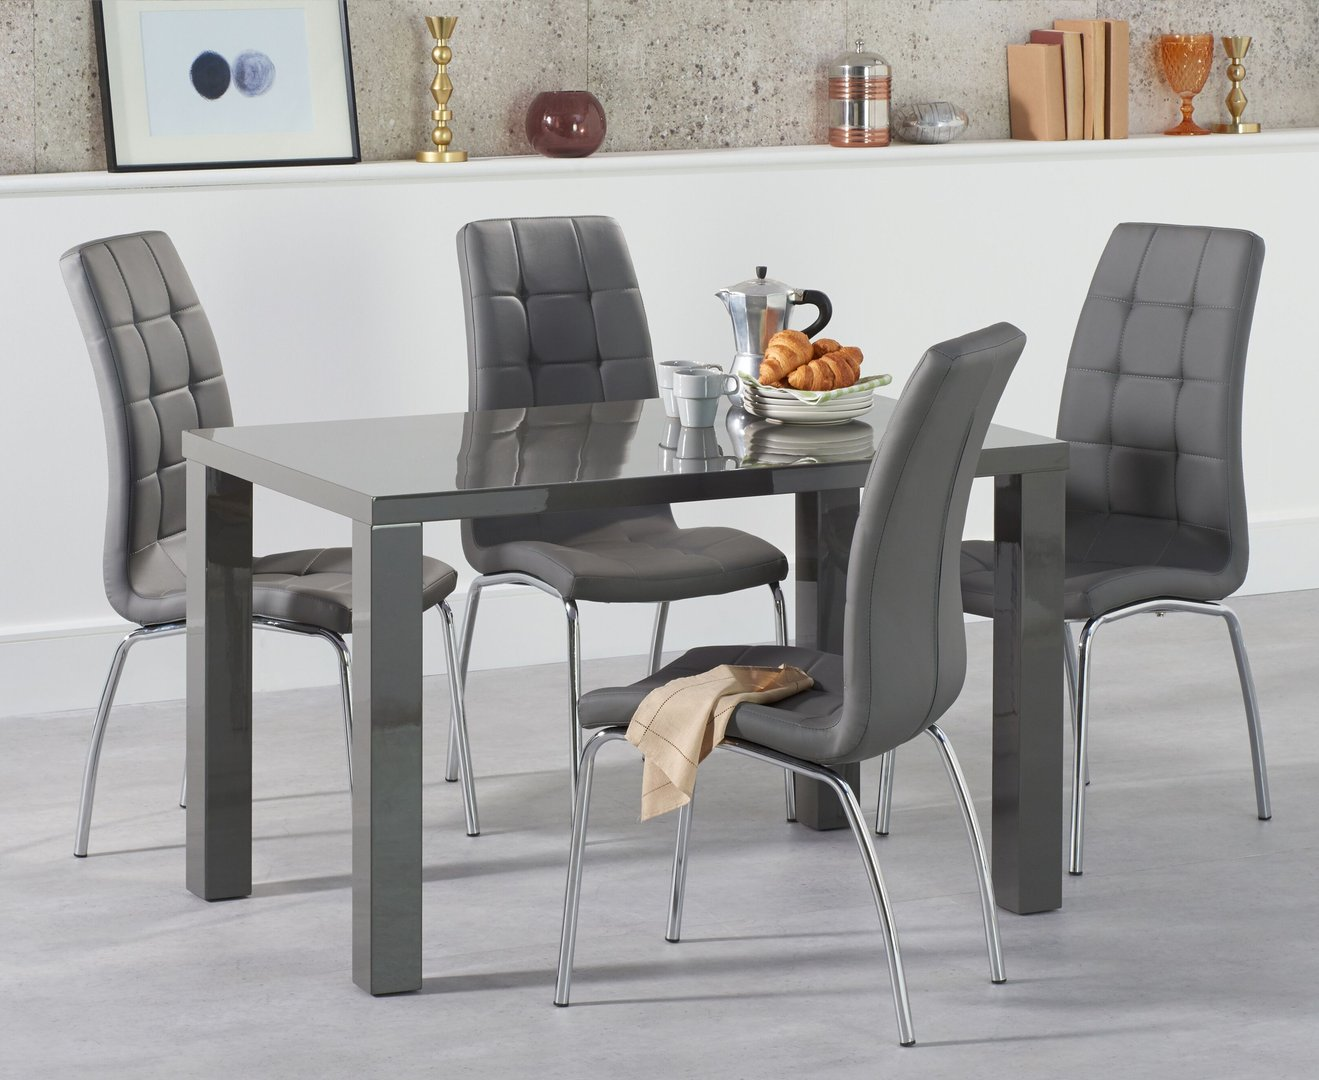 9cm 9 seater Dark Grey high gloss dining table and chairs